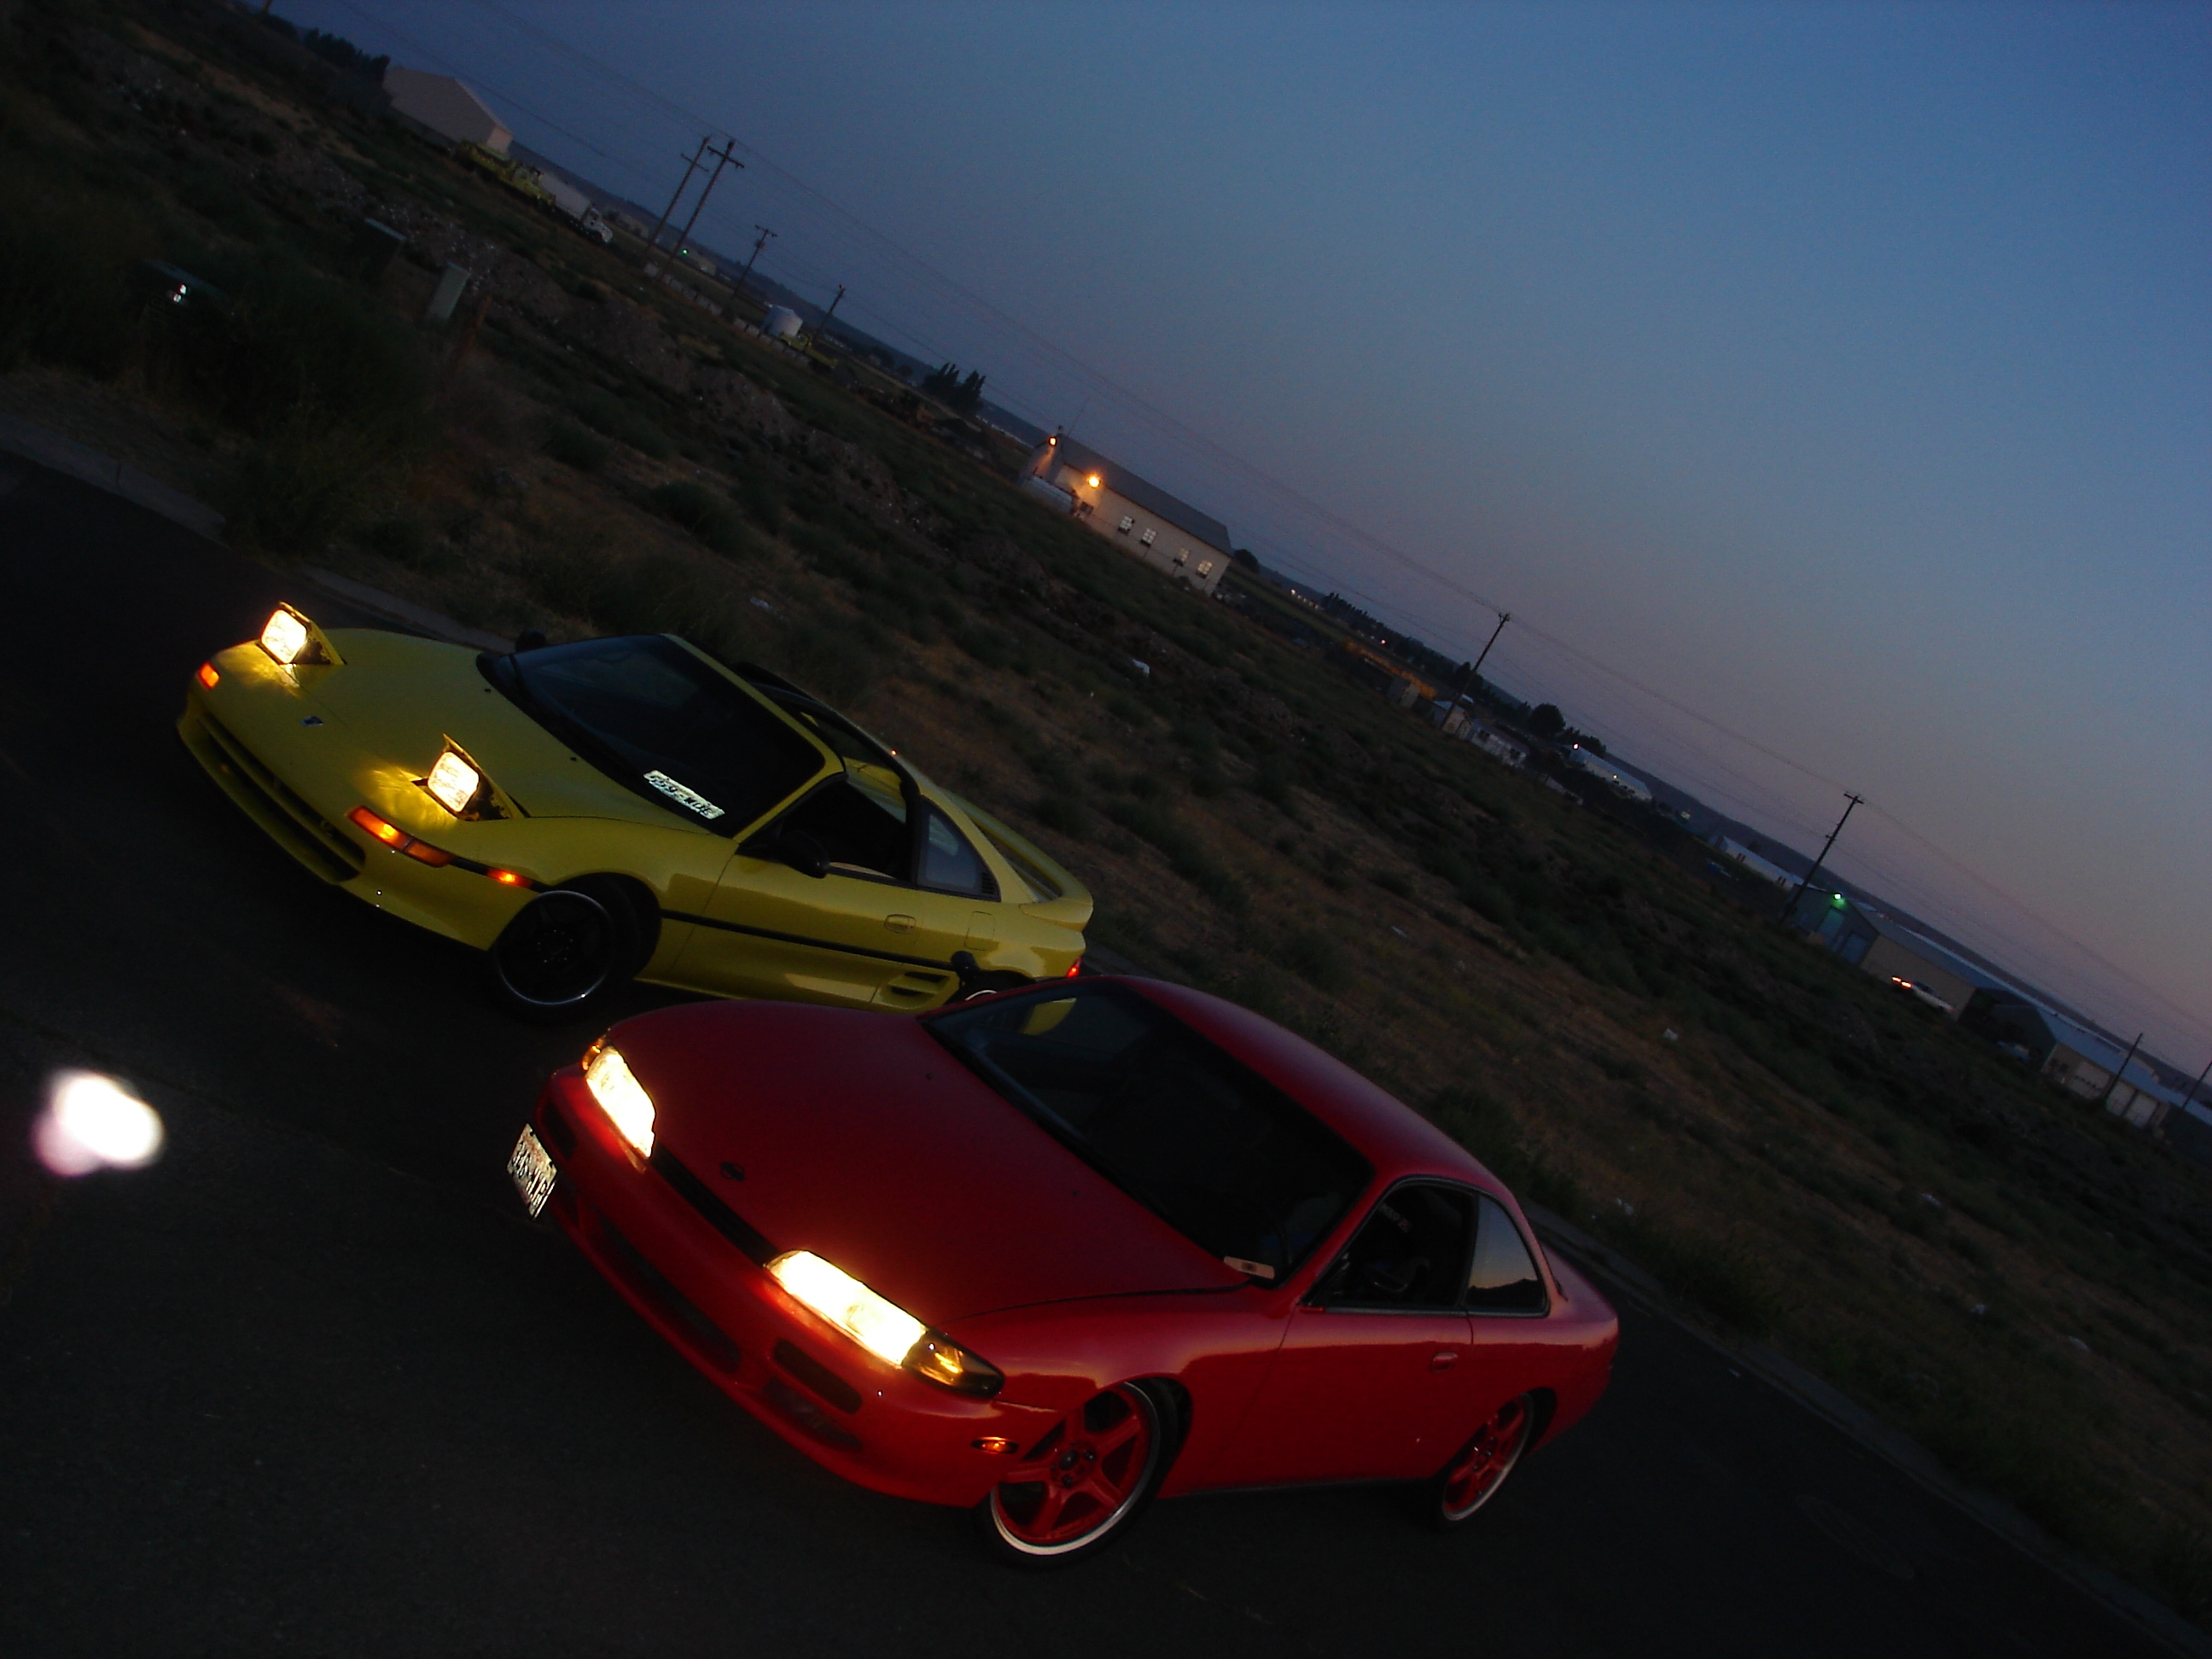 YELOW_MR2 1991 Toyota MR2 11473025